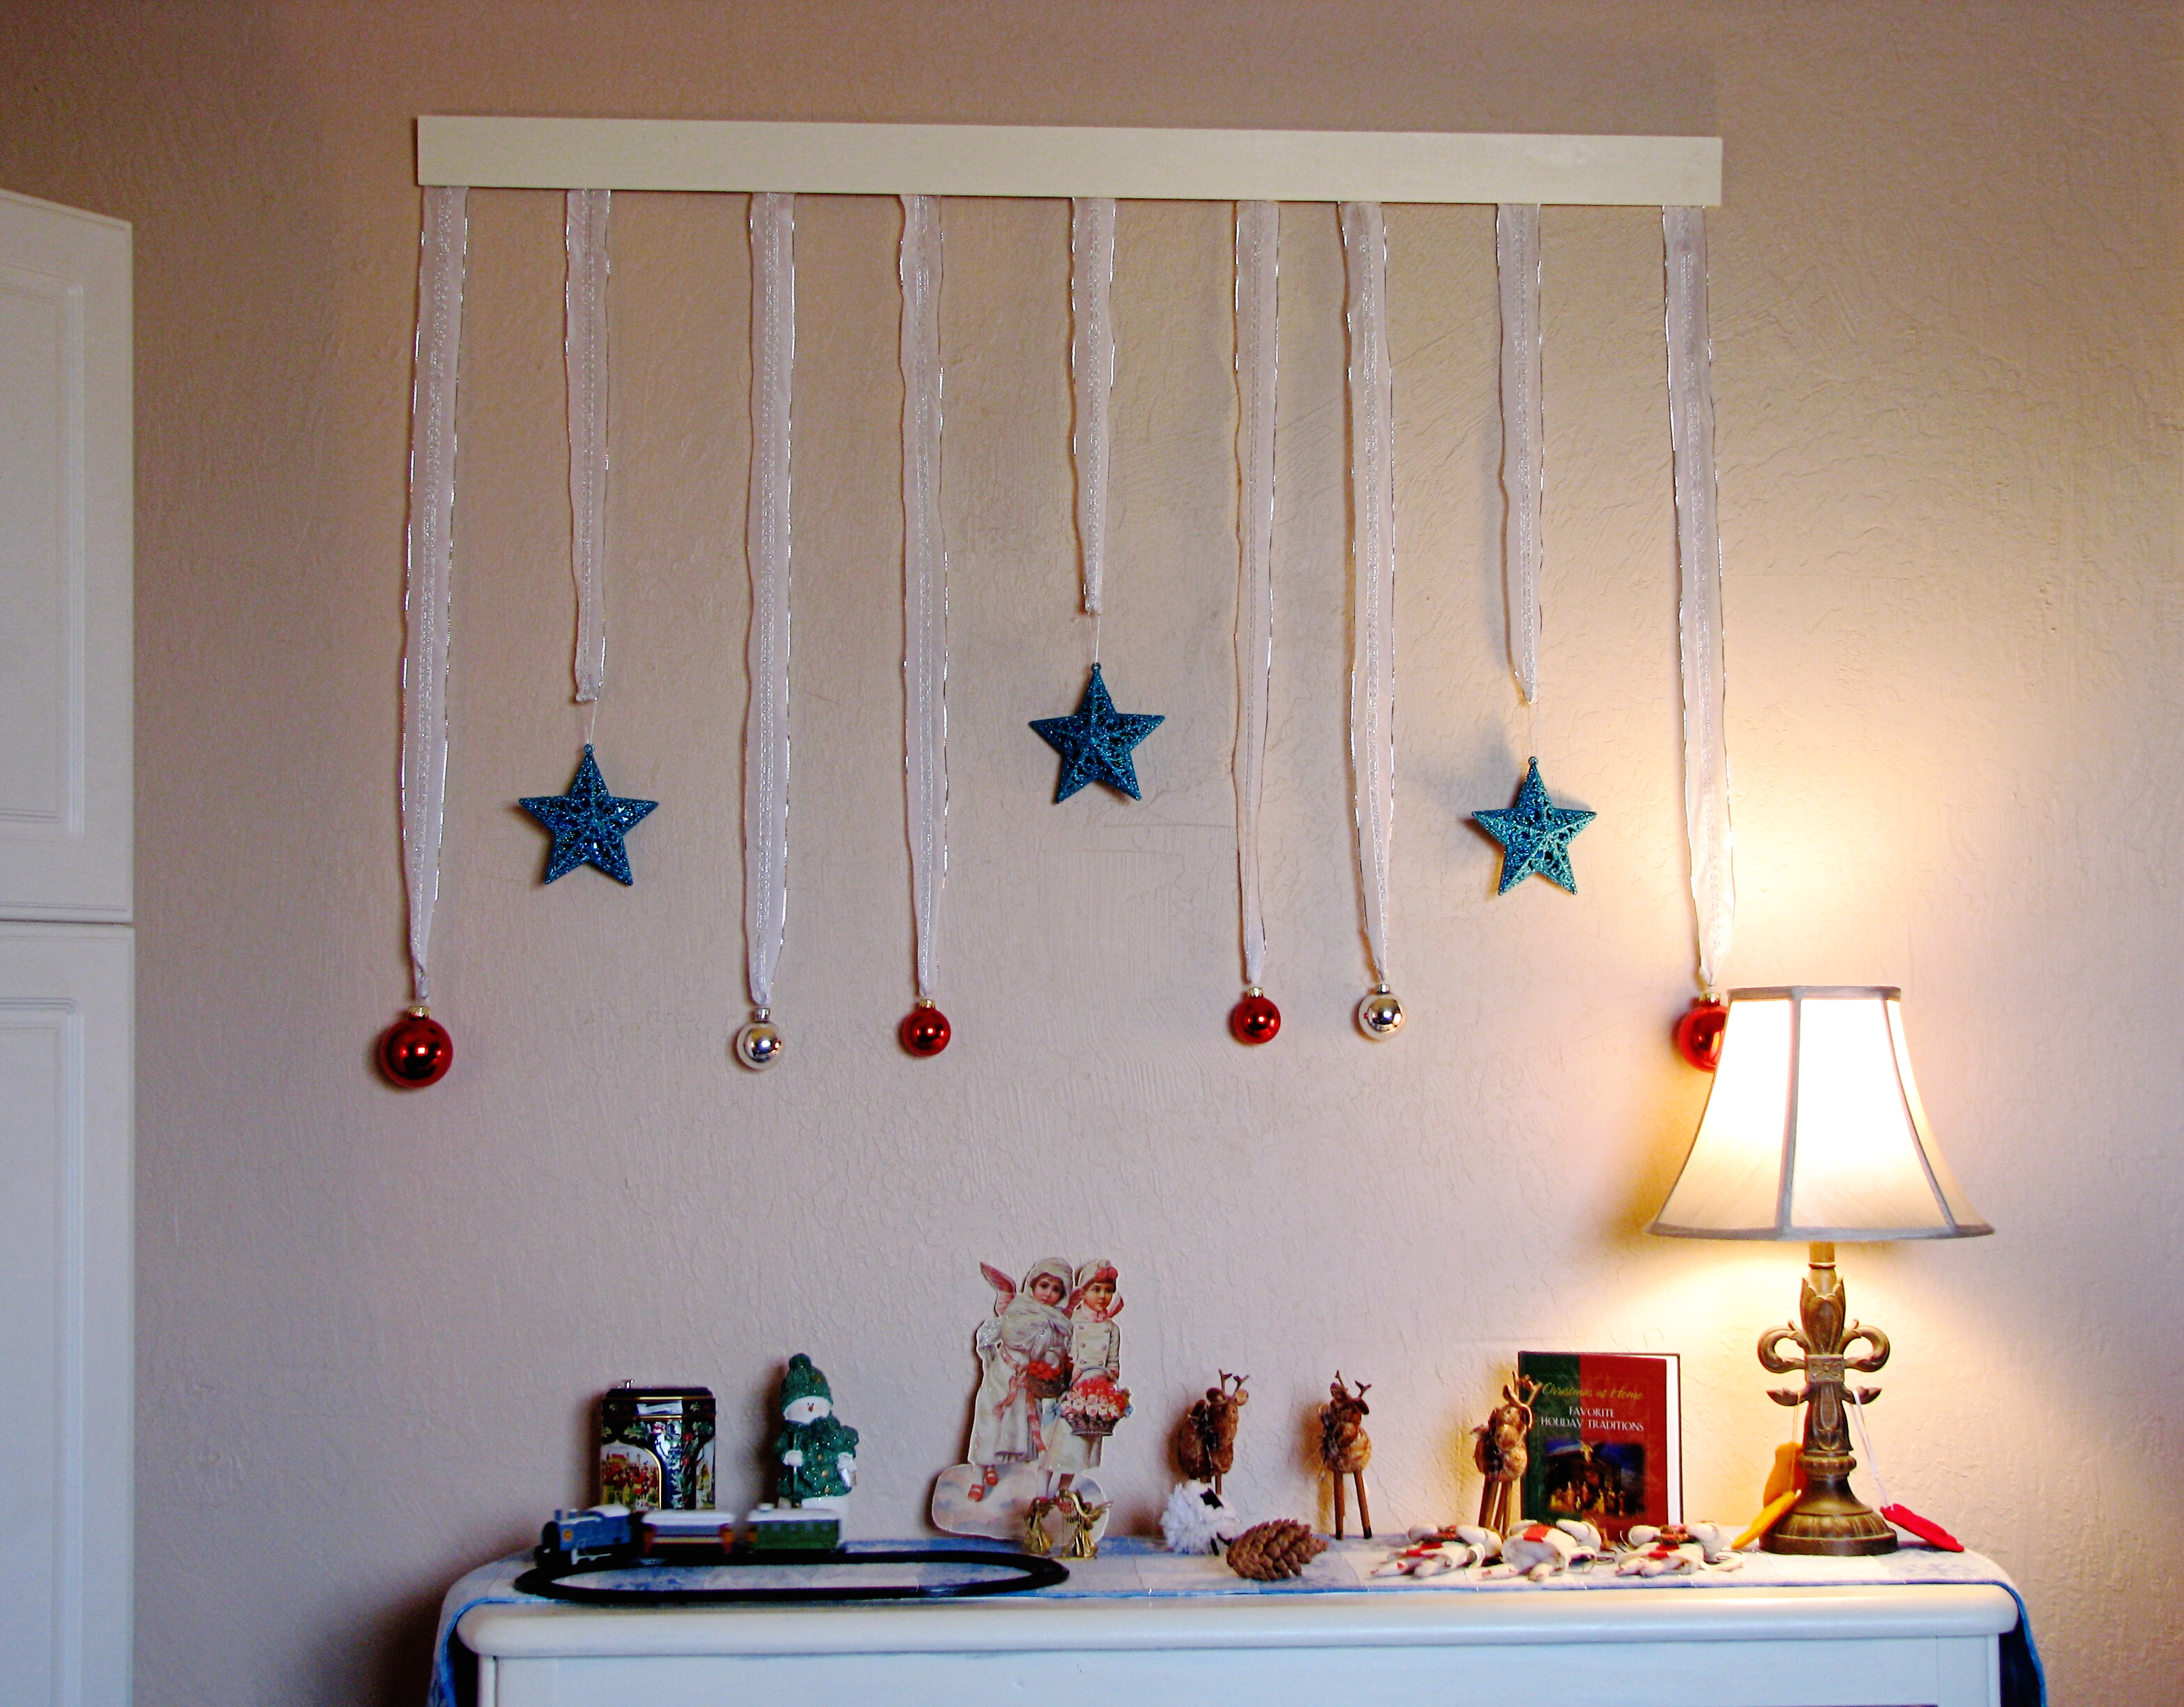 Wall Decoration Photos : Christmas wall decorations ideas for this year